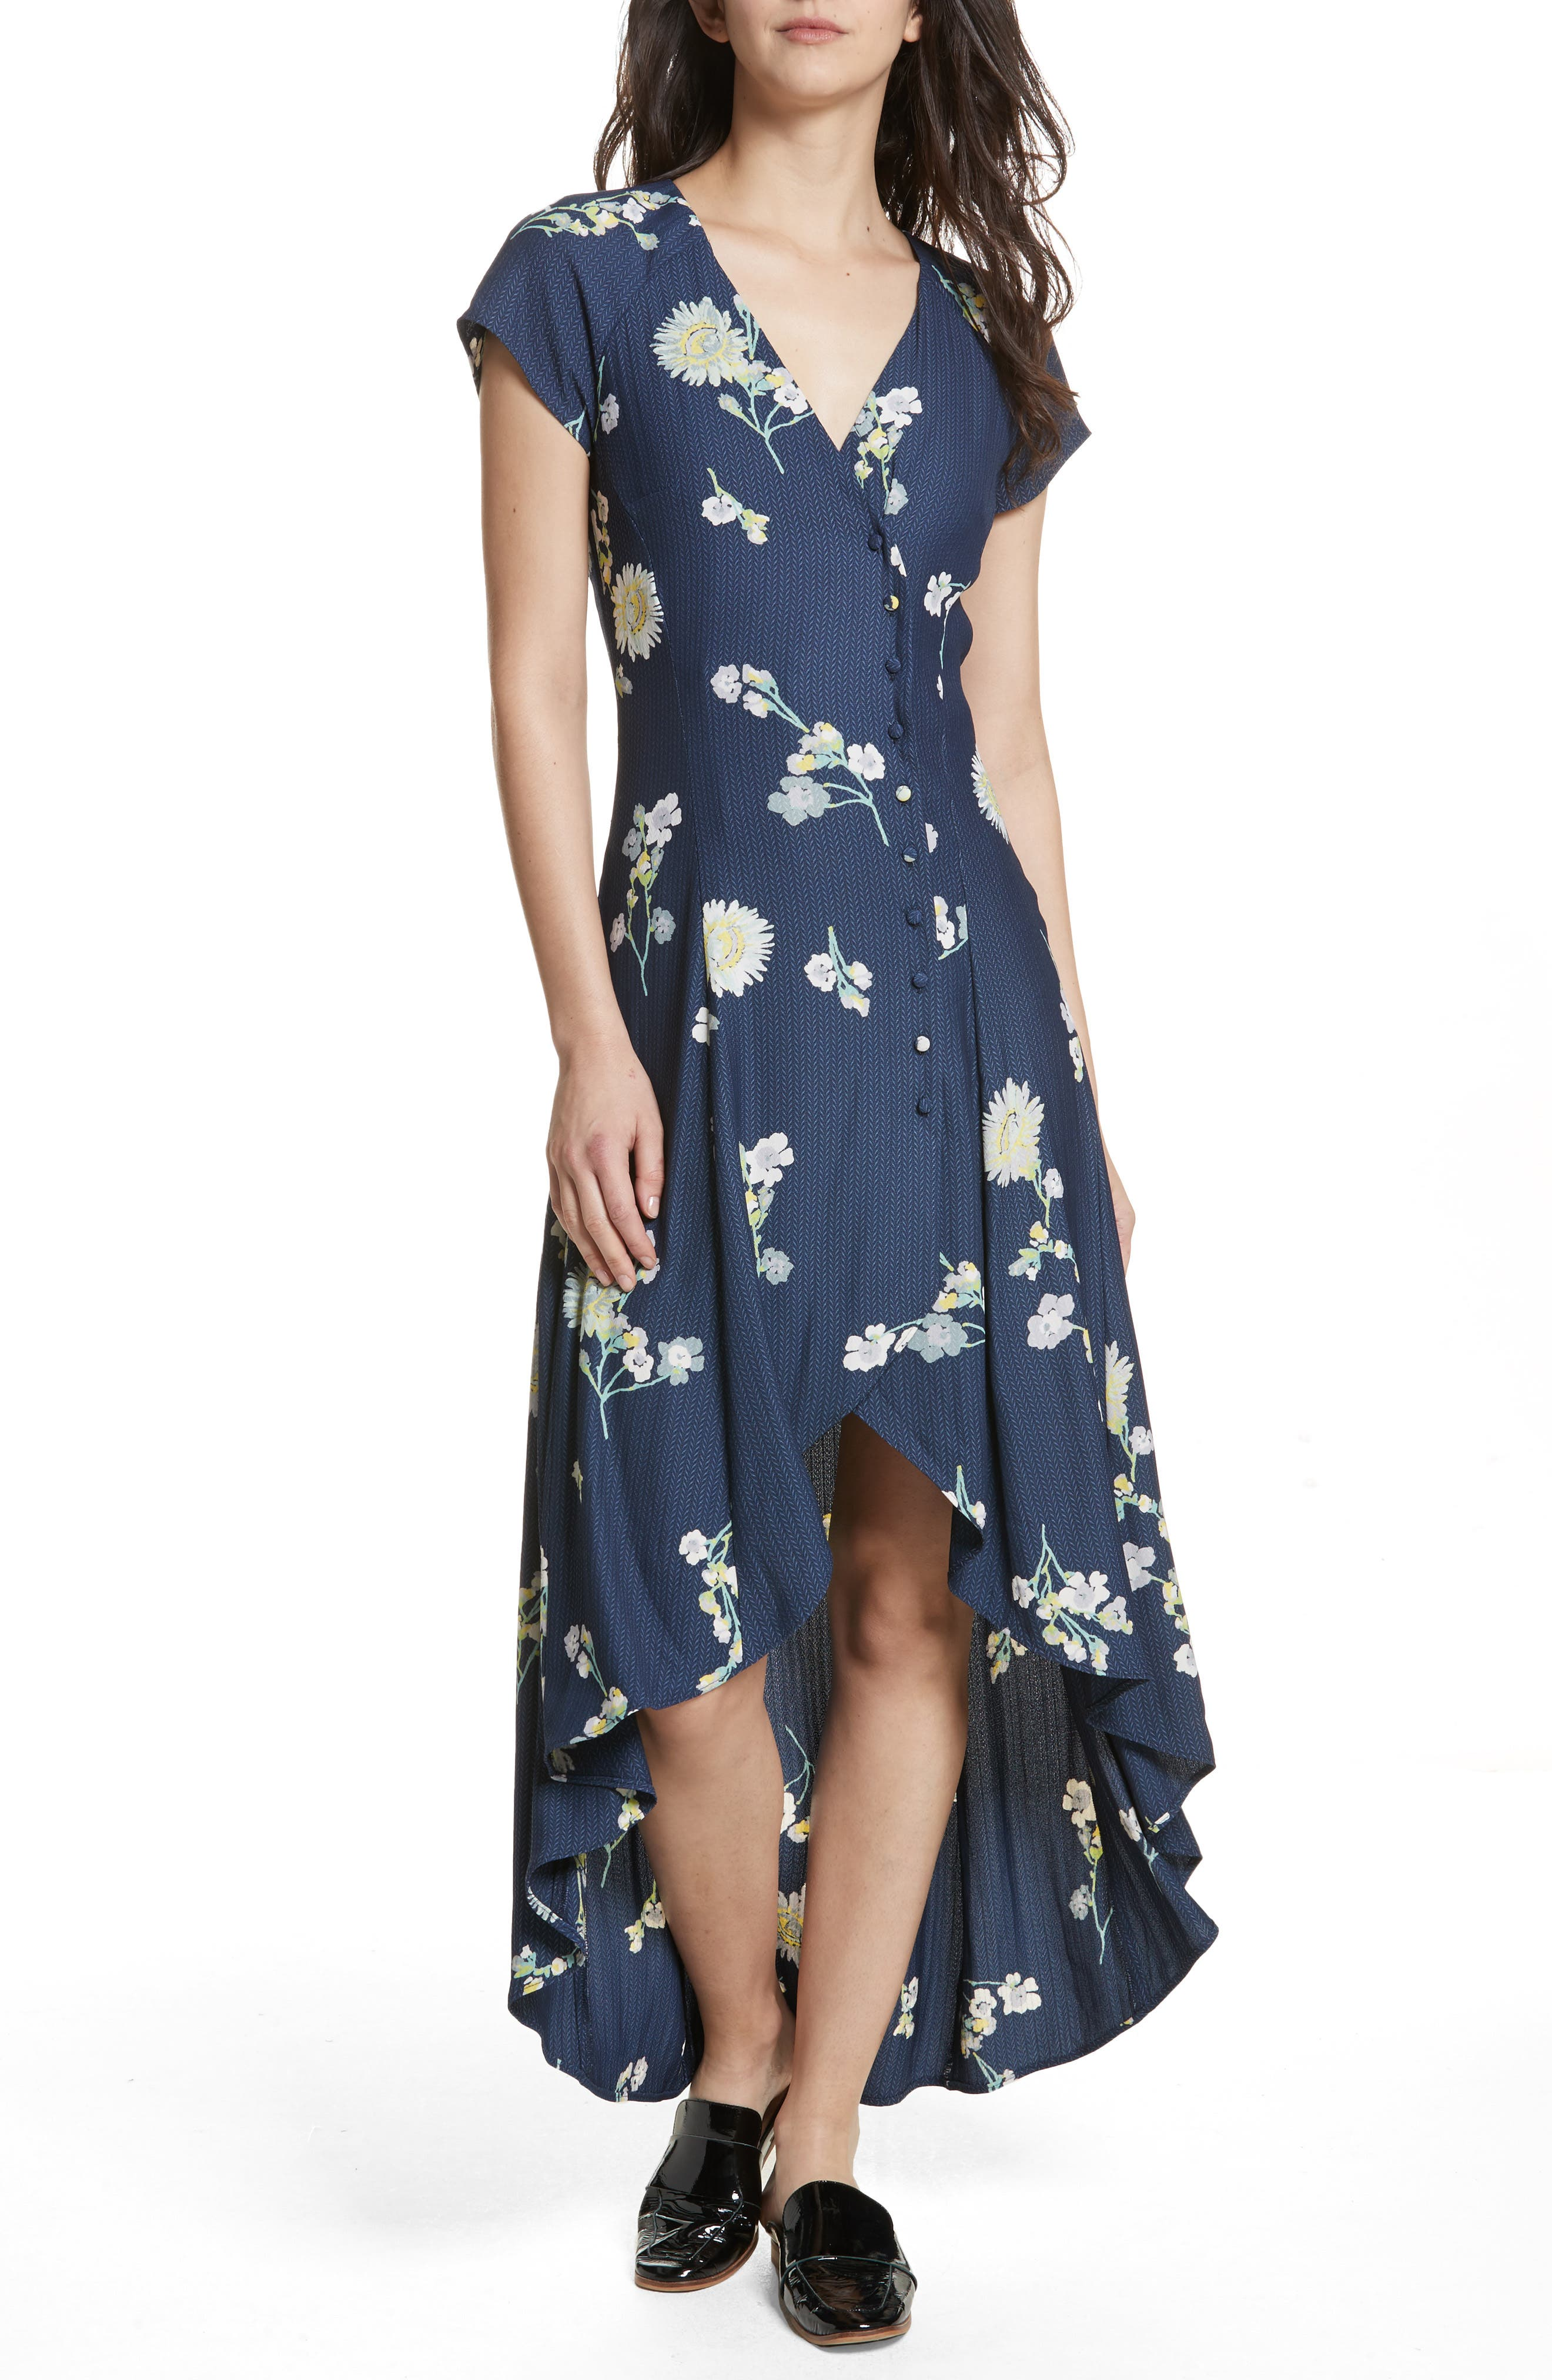 Lost in You Midi Dress,                             Alternate thumbnail 8, color,                             Blue Combo